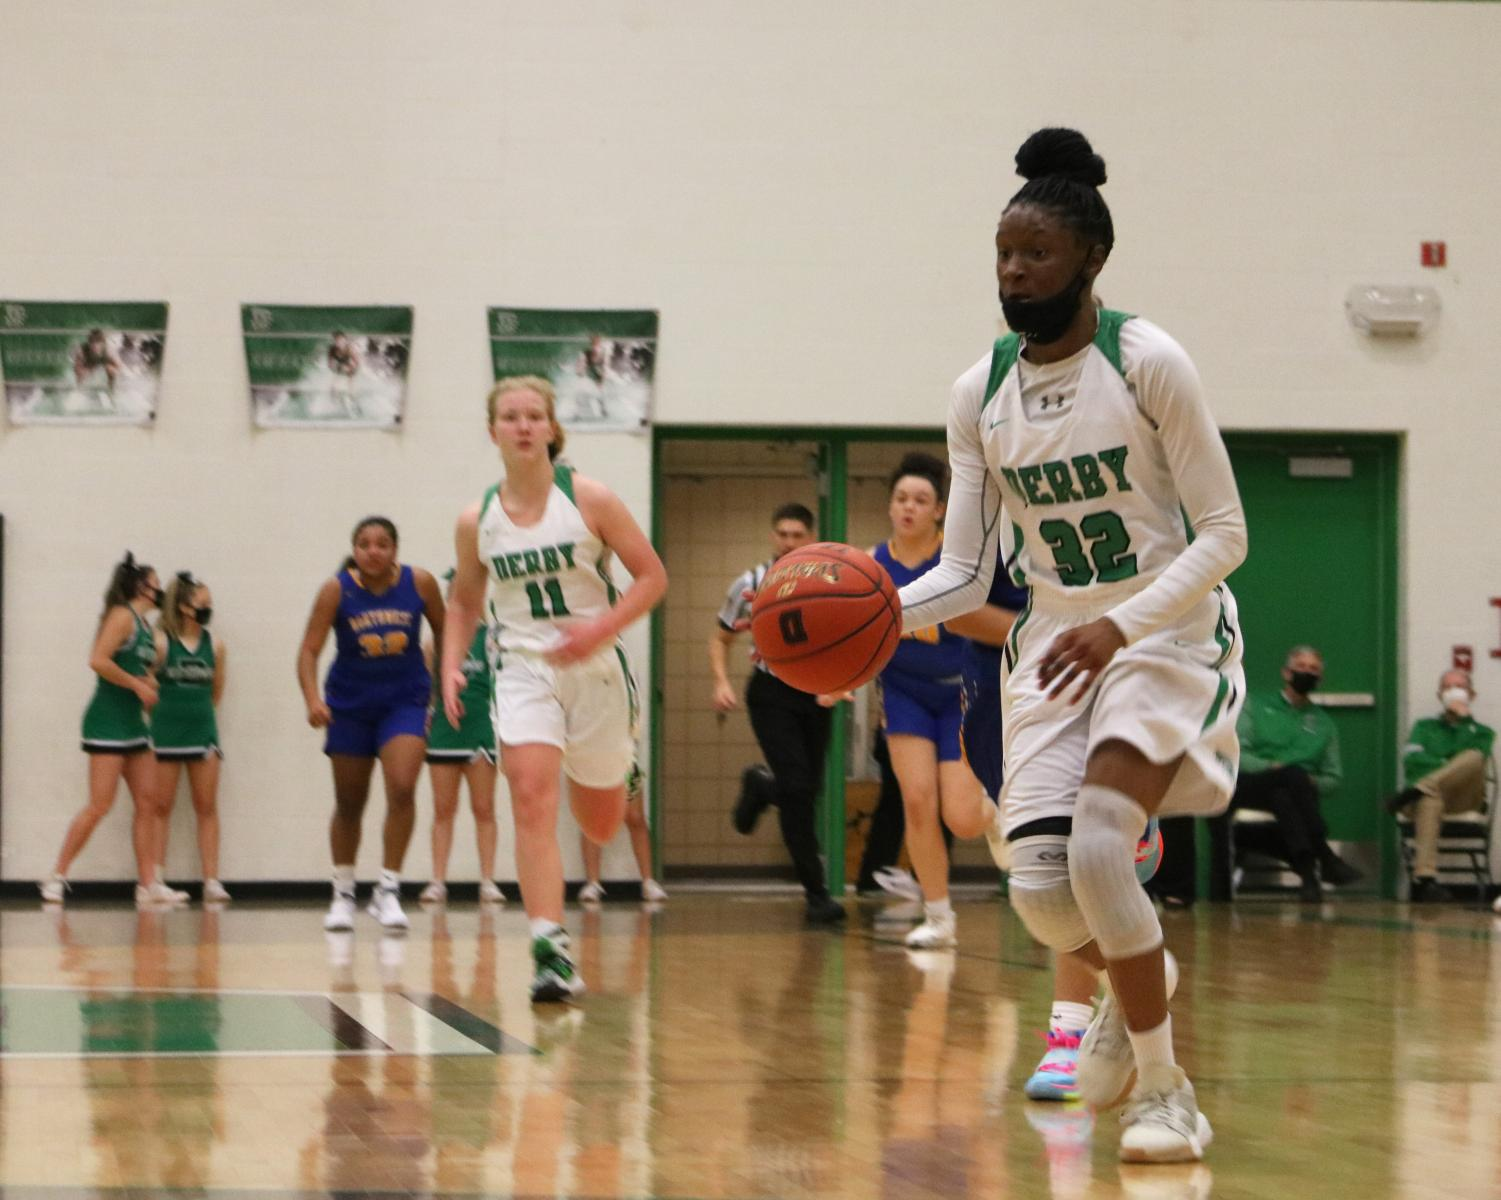 Girls+basketball+vs.+Northwest+%28Photos+by+Reese+Cowden%29